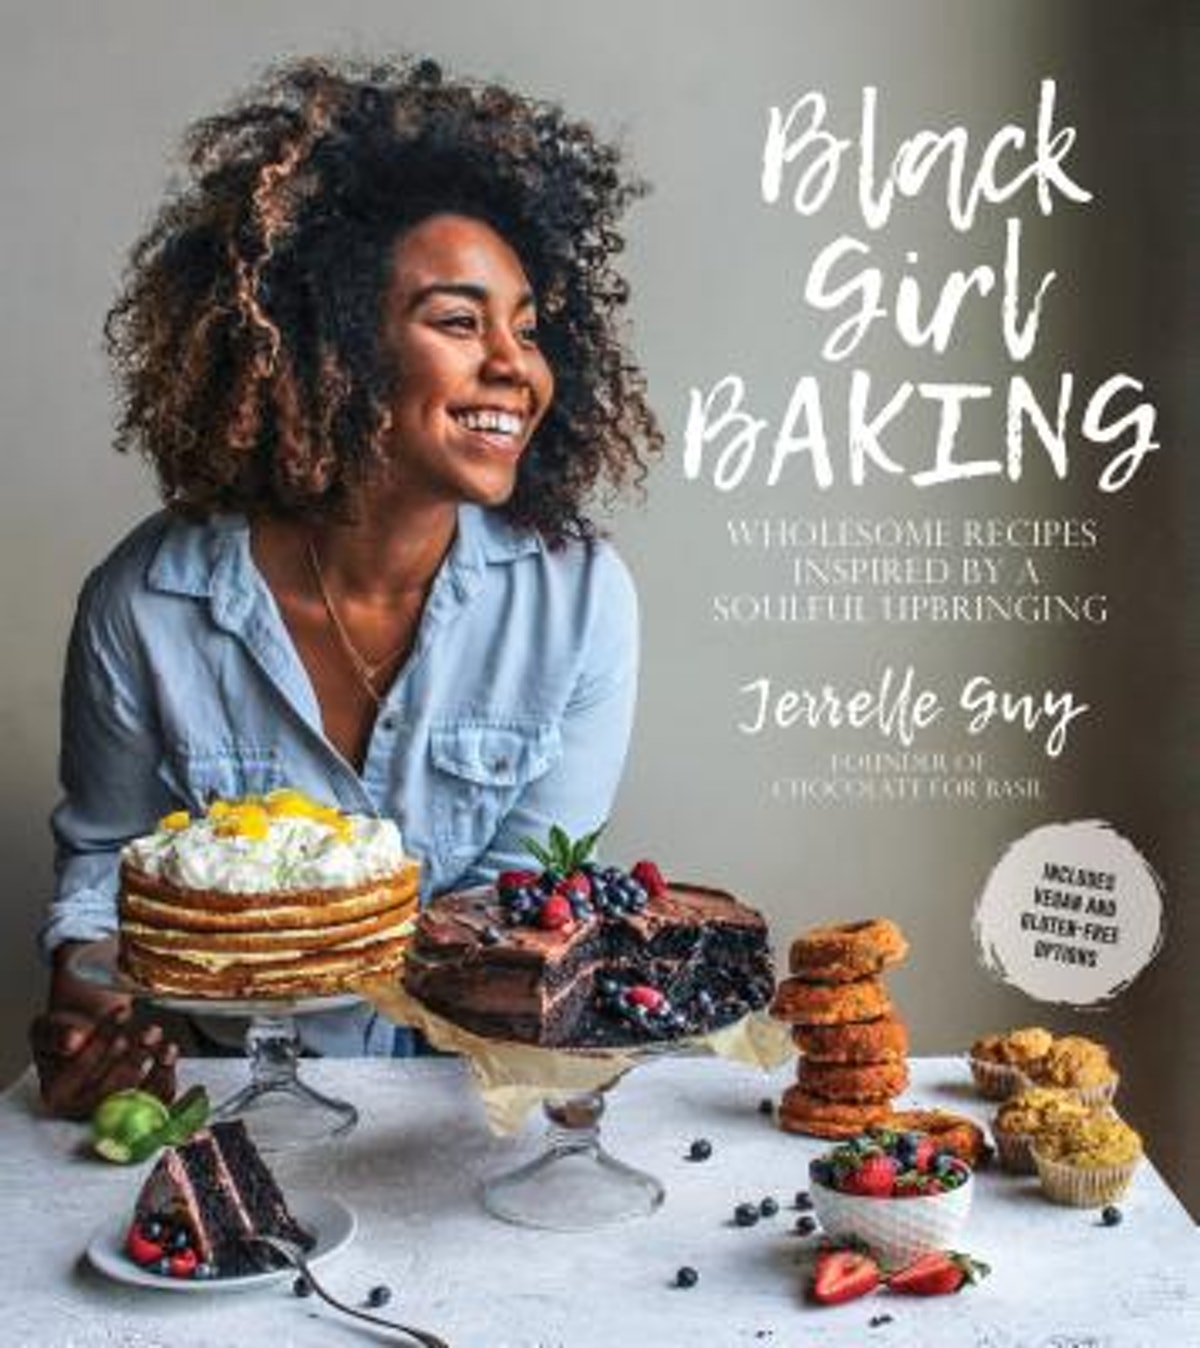 'Black Girl Baking: Wholesome Recipes Inspired by a Soulful Upbringing' by Jerelle Guy